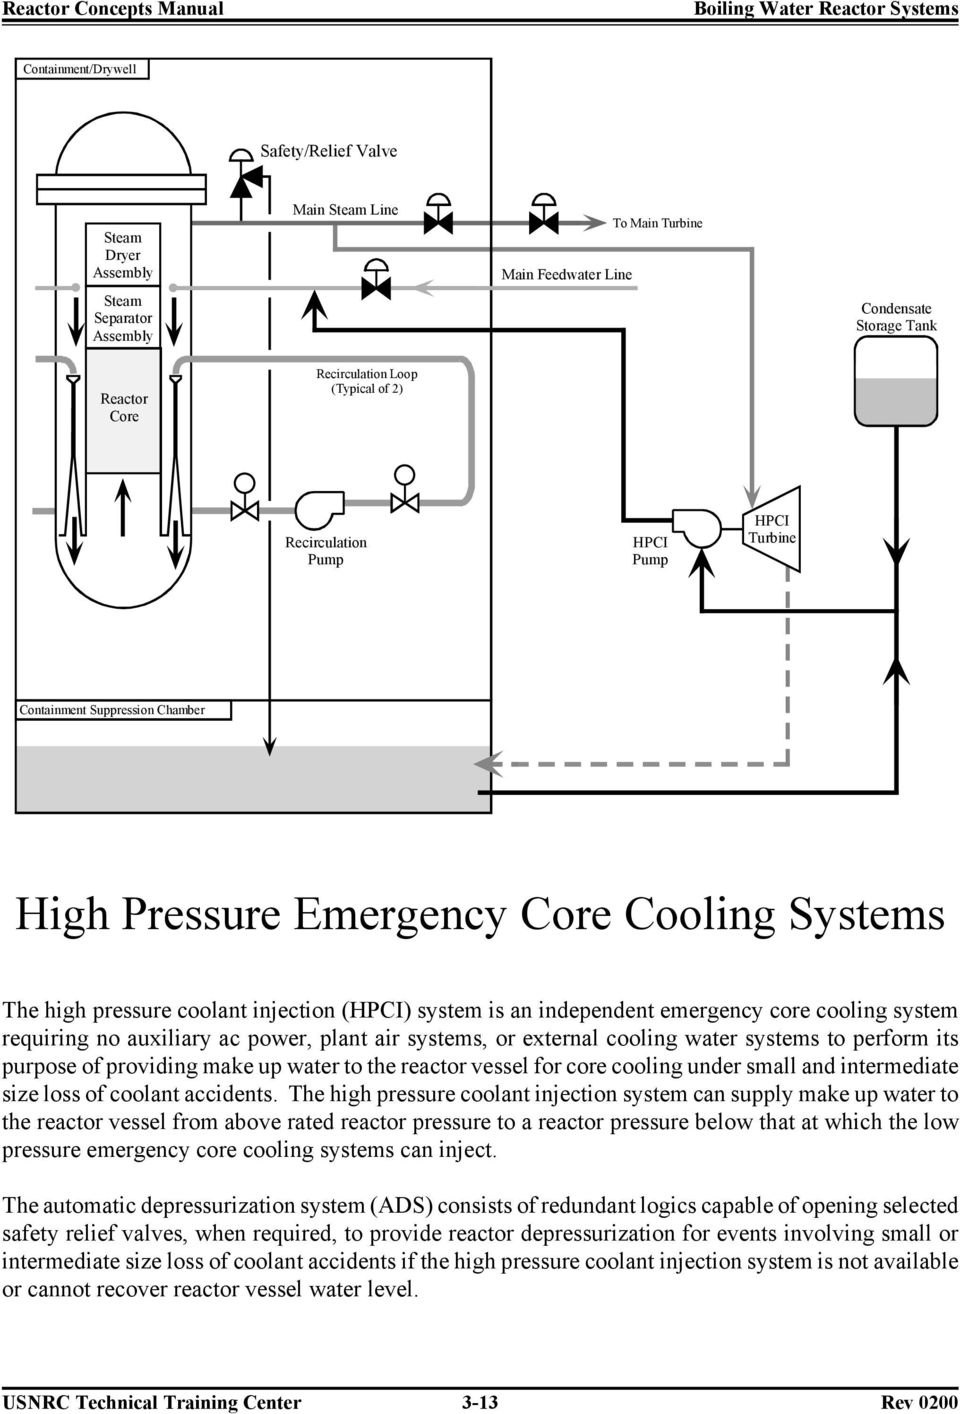 power, plant air systems, or external cooling water systems to perform its purpose of providing make up water to the reactor vessel for core cooling under small and intermediate size loss of coolant